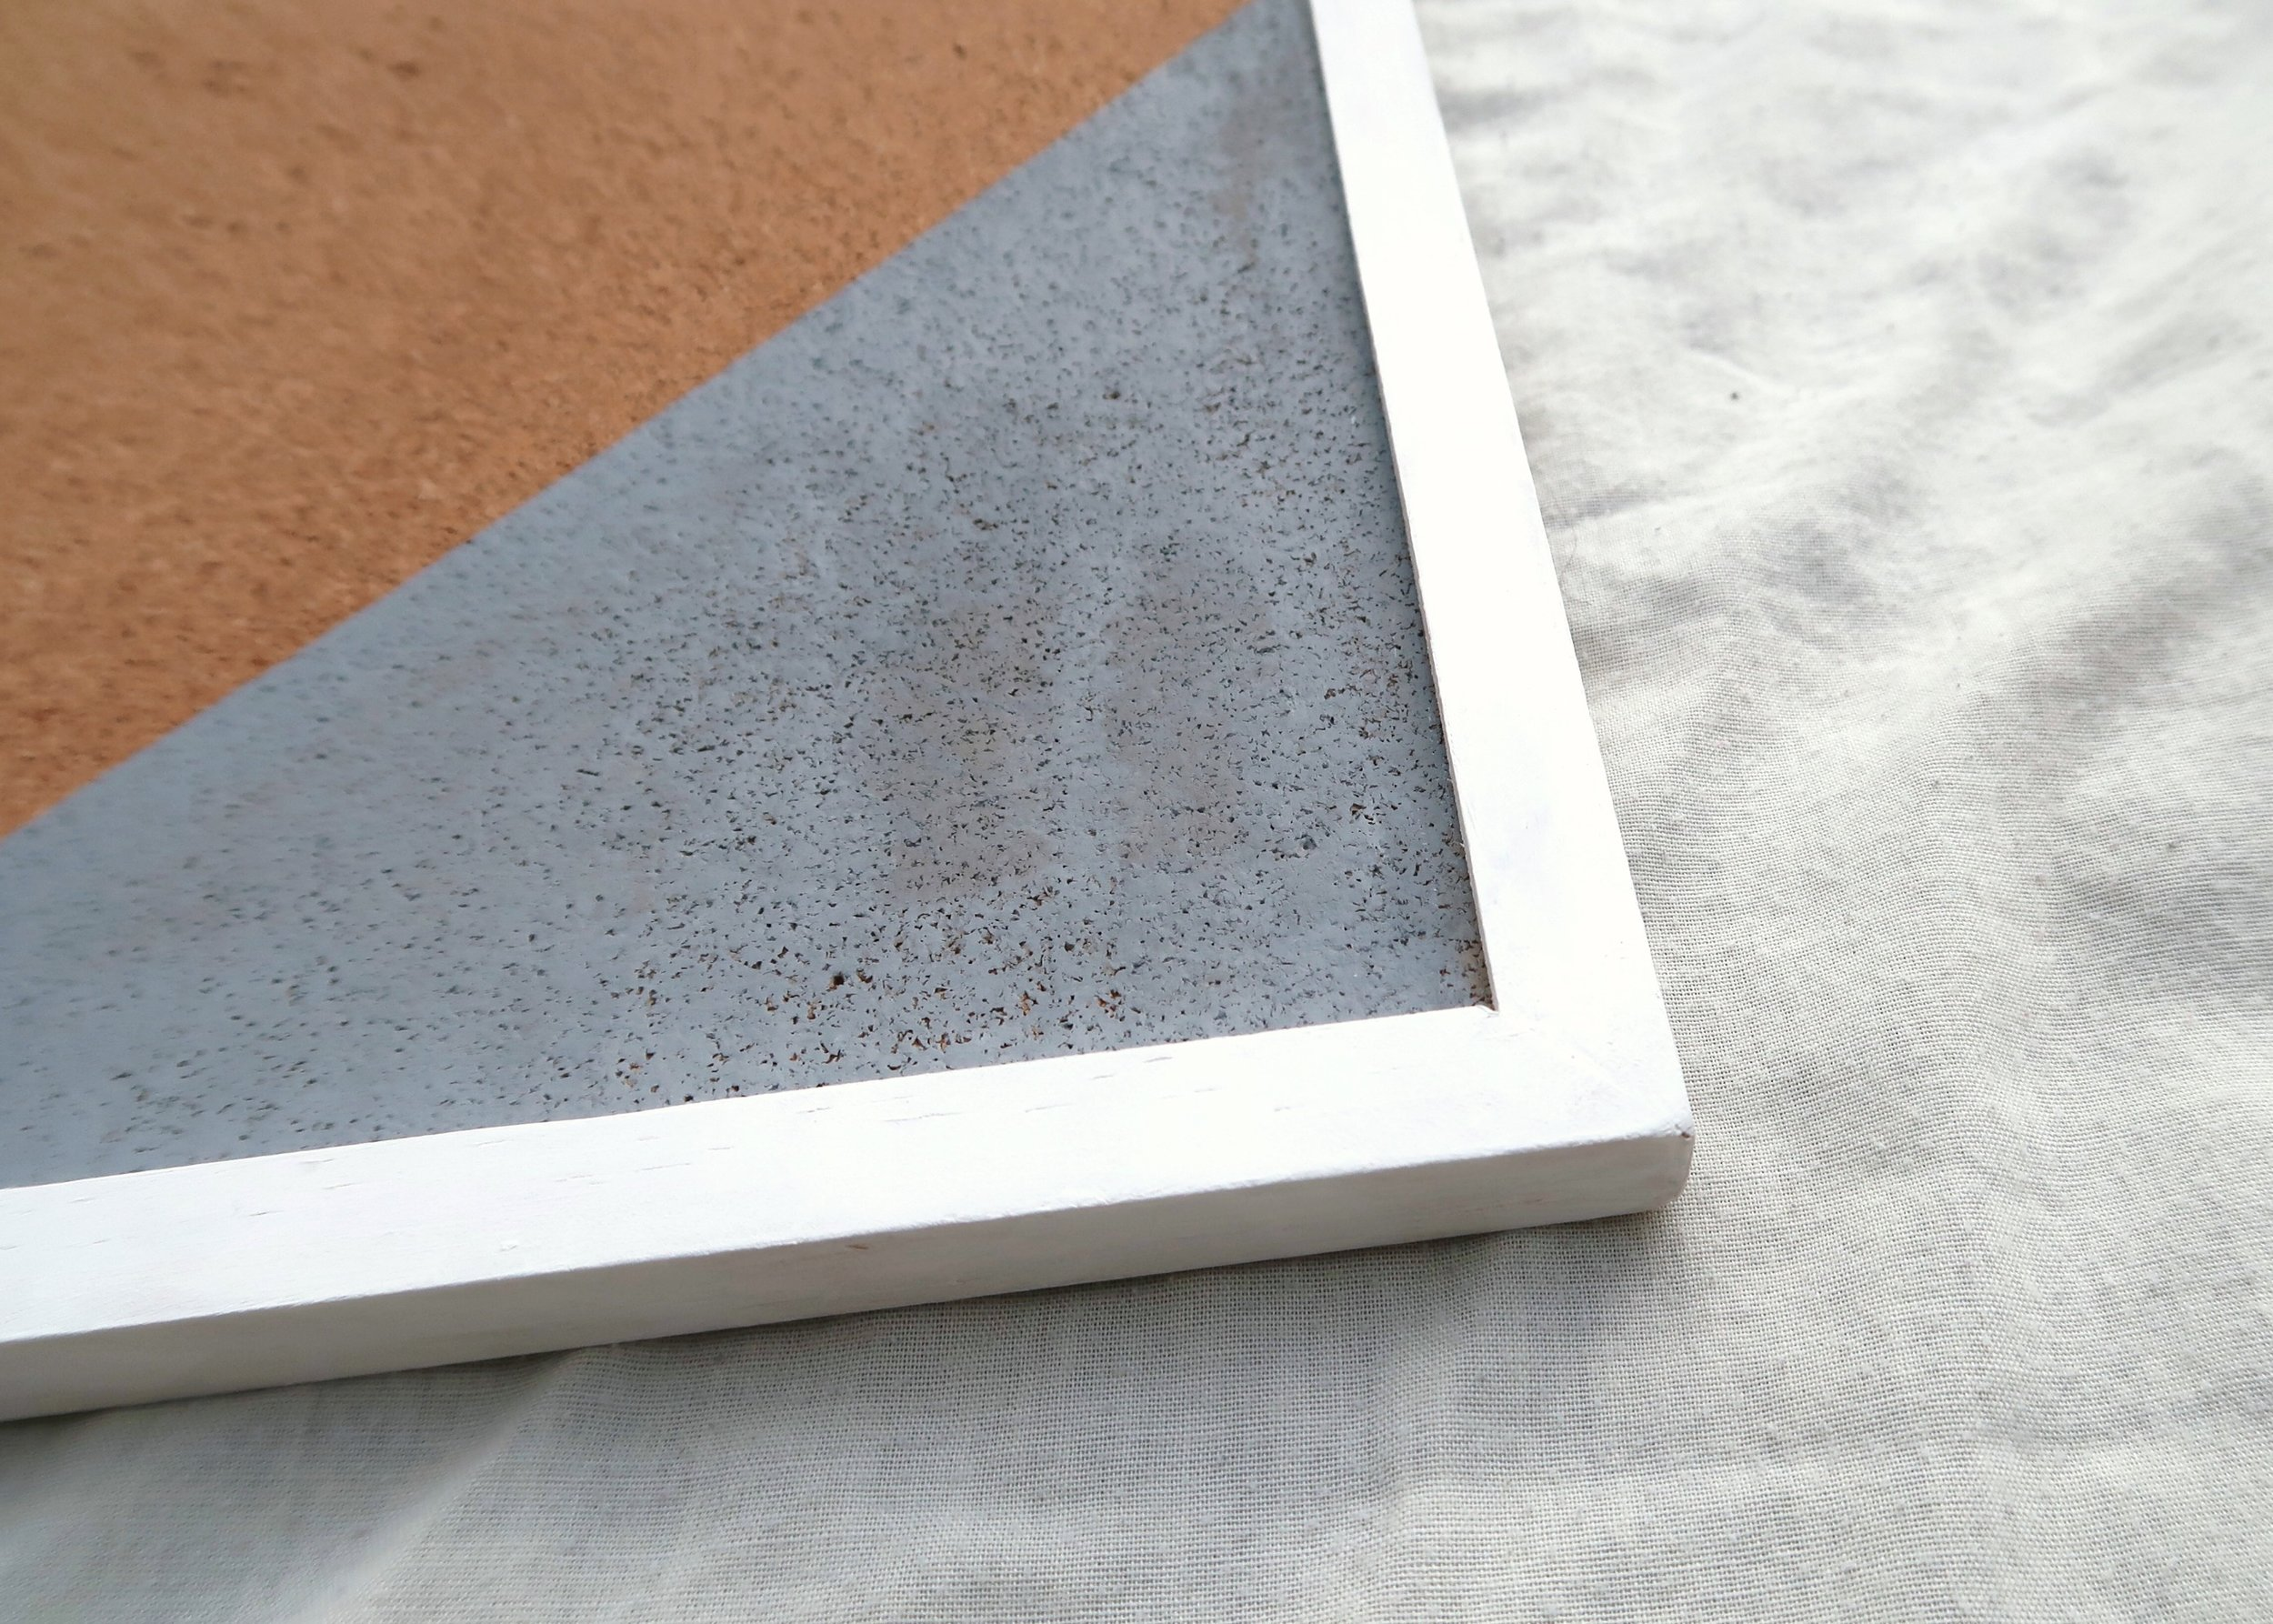 4. - Next, grab some white paint and carefully paint a coat over the whole wooden frame. Once this is dry, paint another coat of white paint and leave to dry.